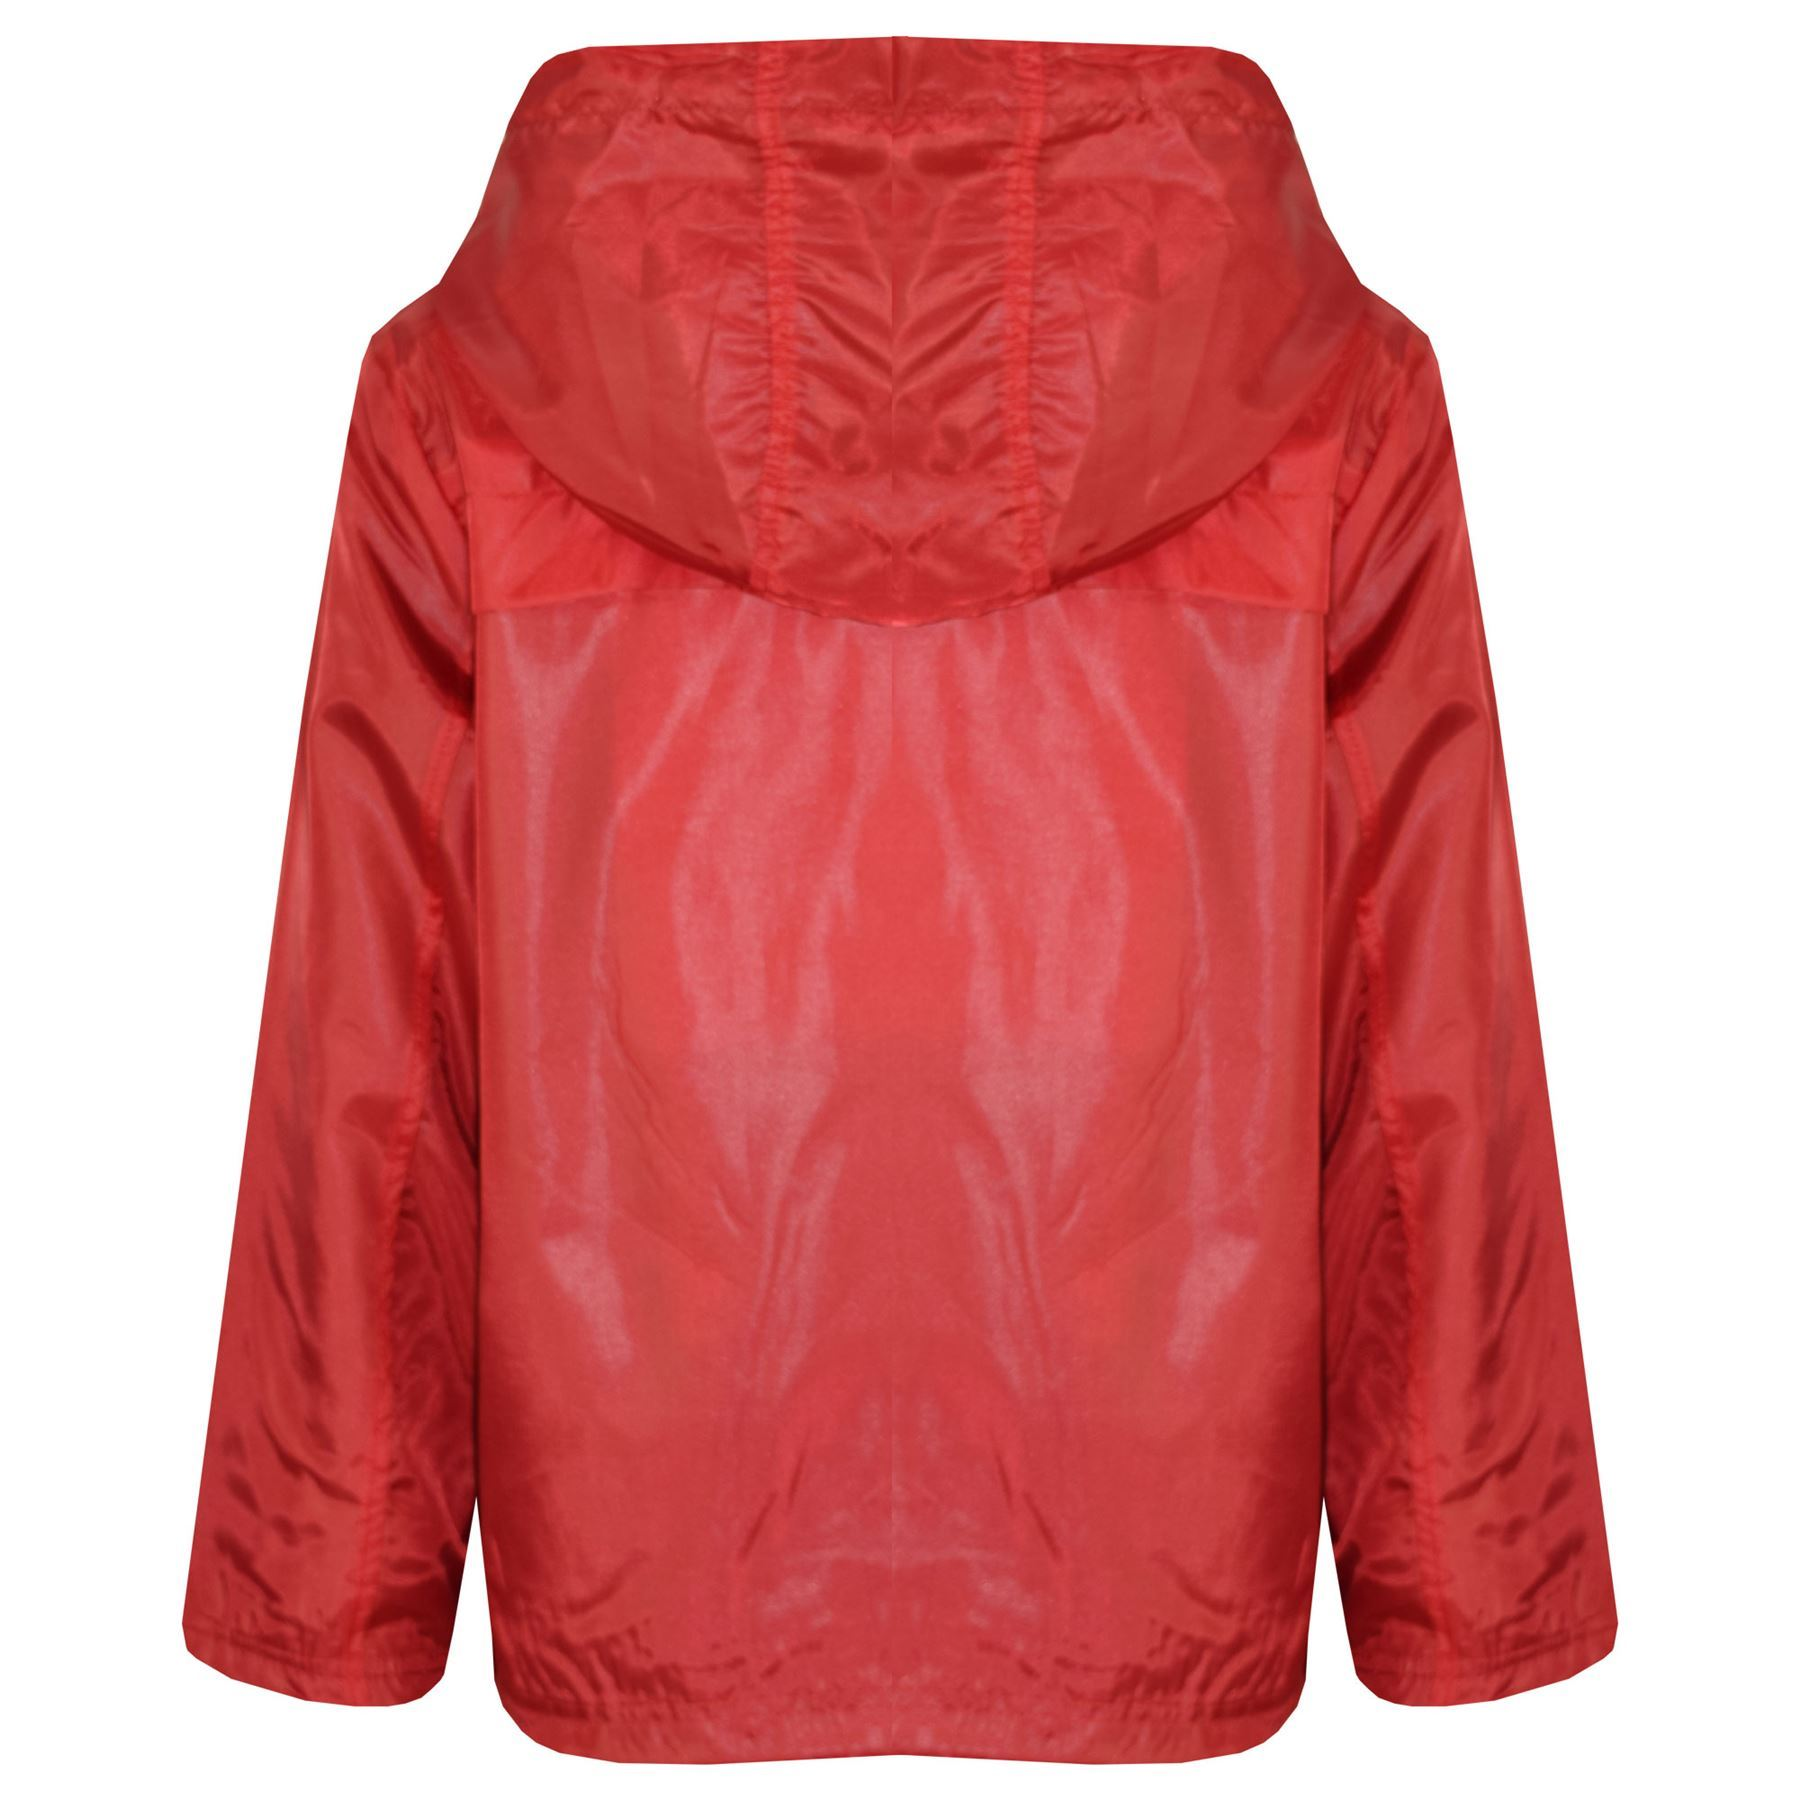 Kids Girls Boys Red Hooded Raincoats Cagoule Lightweight Jacket Rain Mac 5-13 Yr